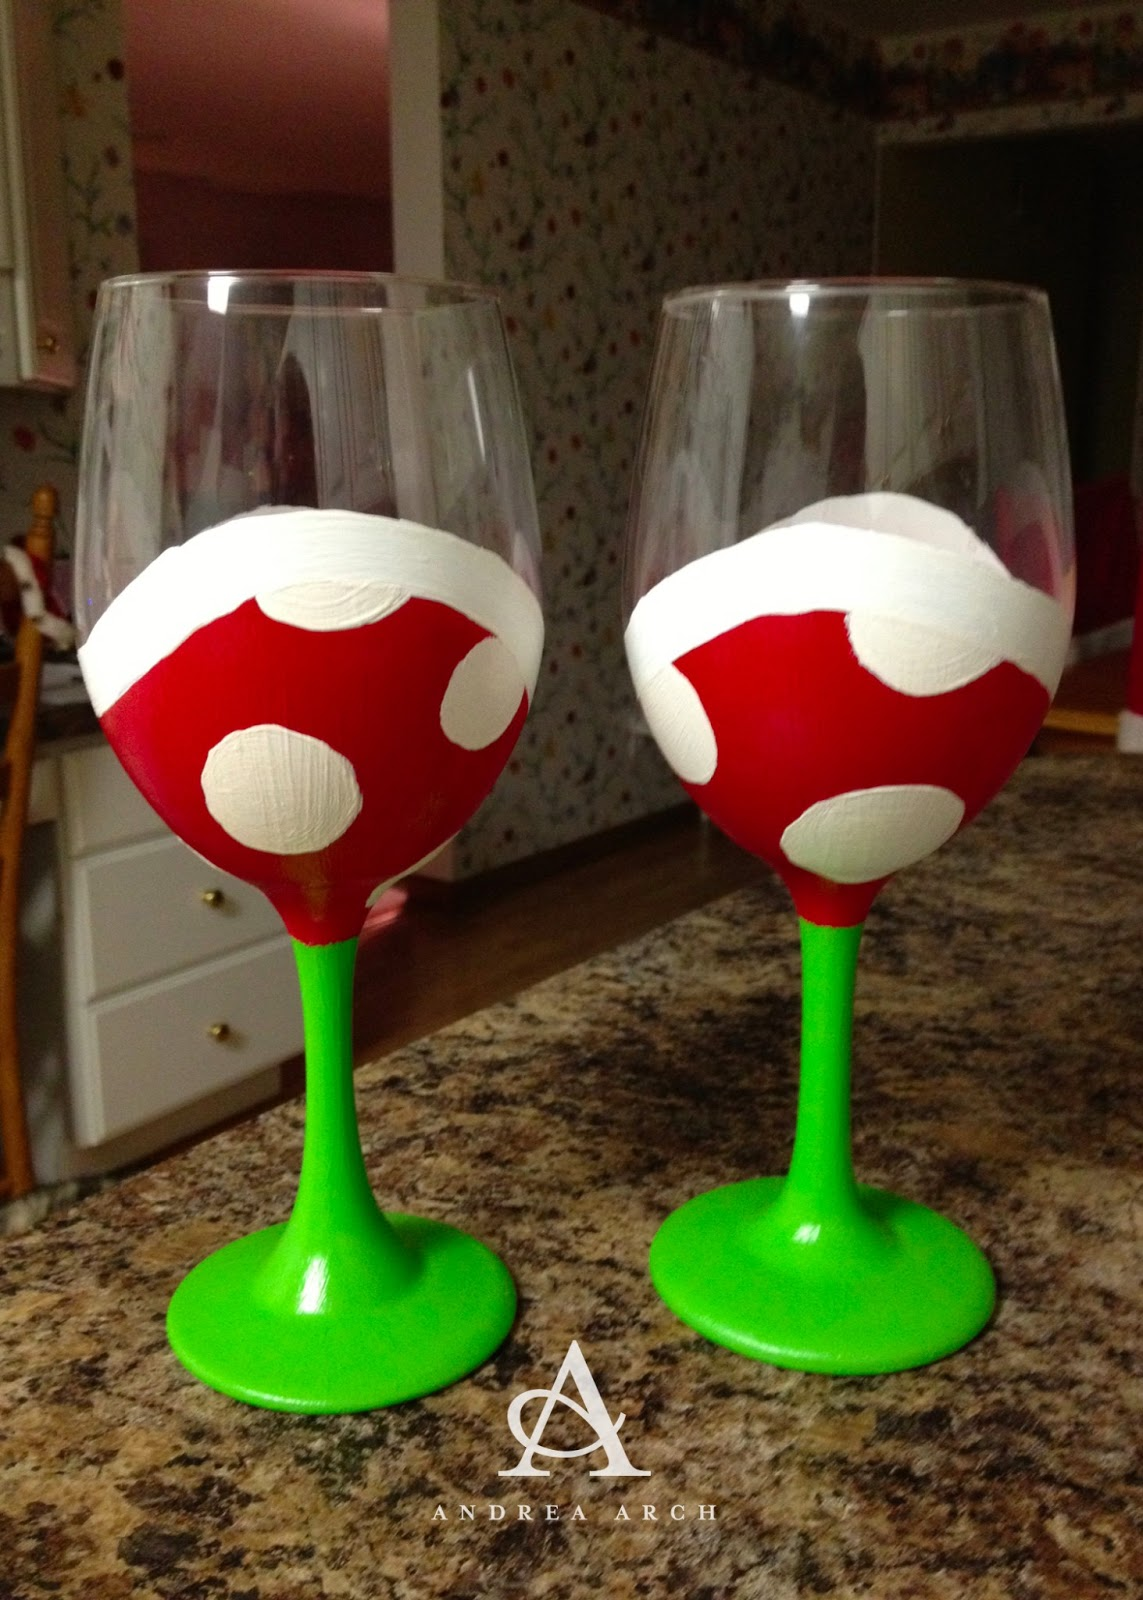 Andrea arch diy mario piranha plant wine glasses for Diy painted wine glasses